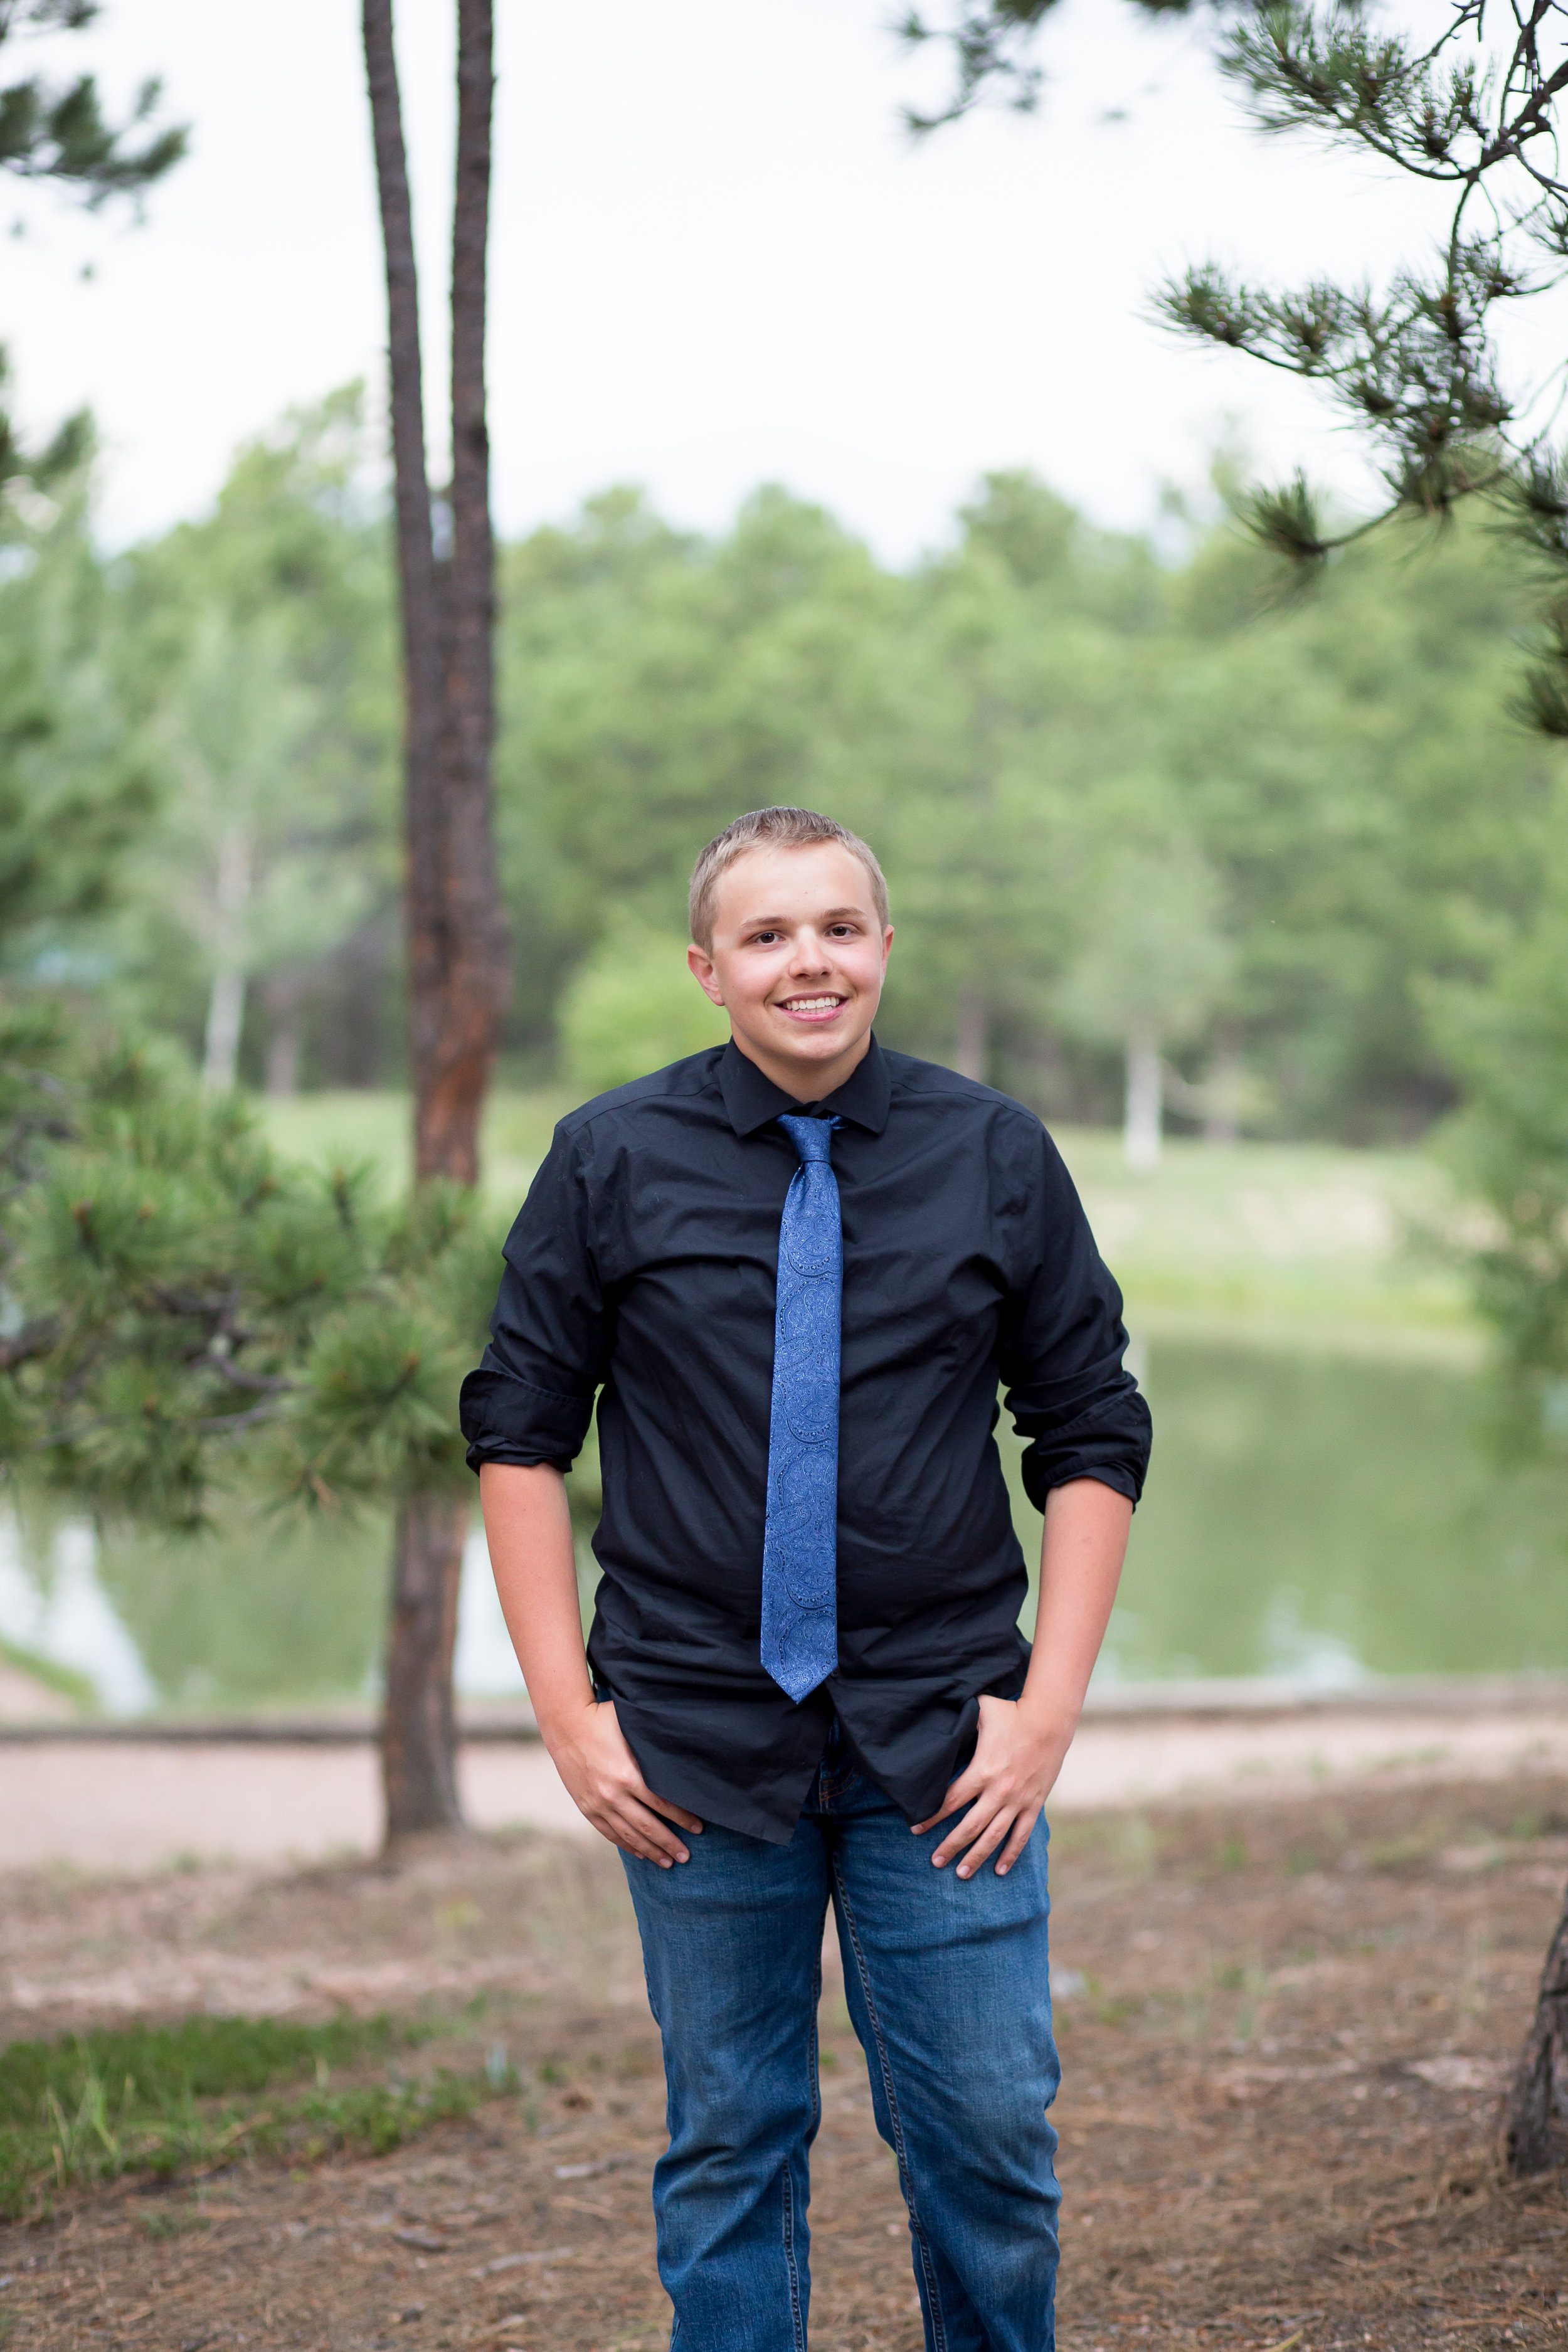 Colorado Springs Senior Photography | Stacy Carosa Photography | Colorado Springs senior photographer | senior session at Fox Run Park | Widefield high school senior among pine trees